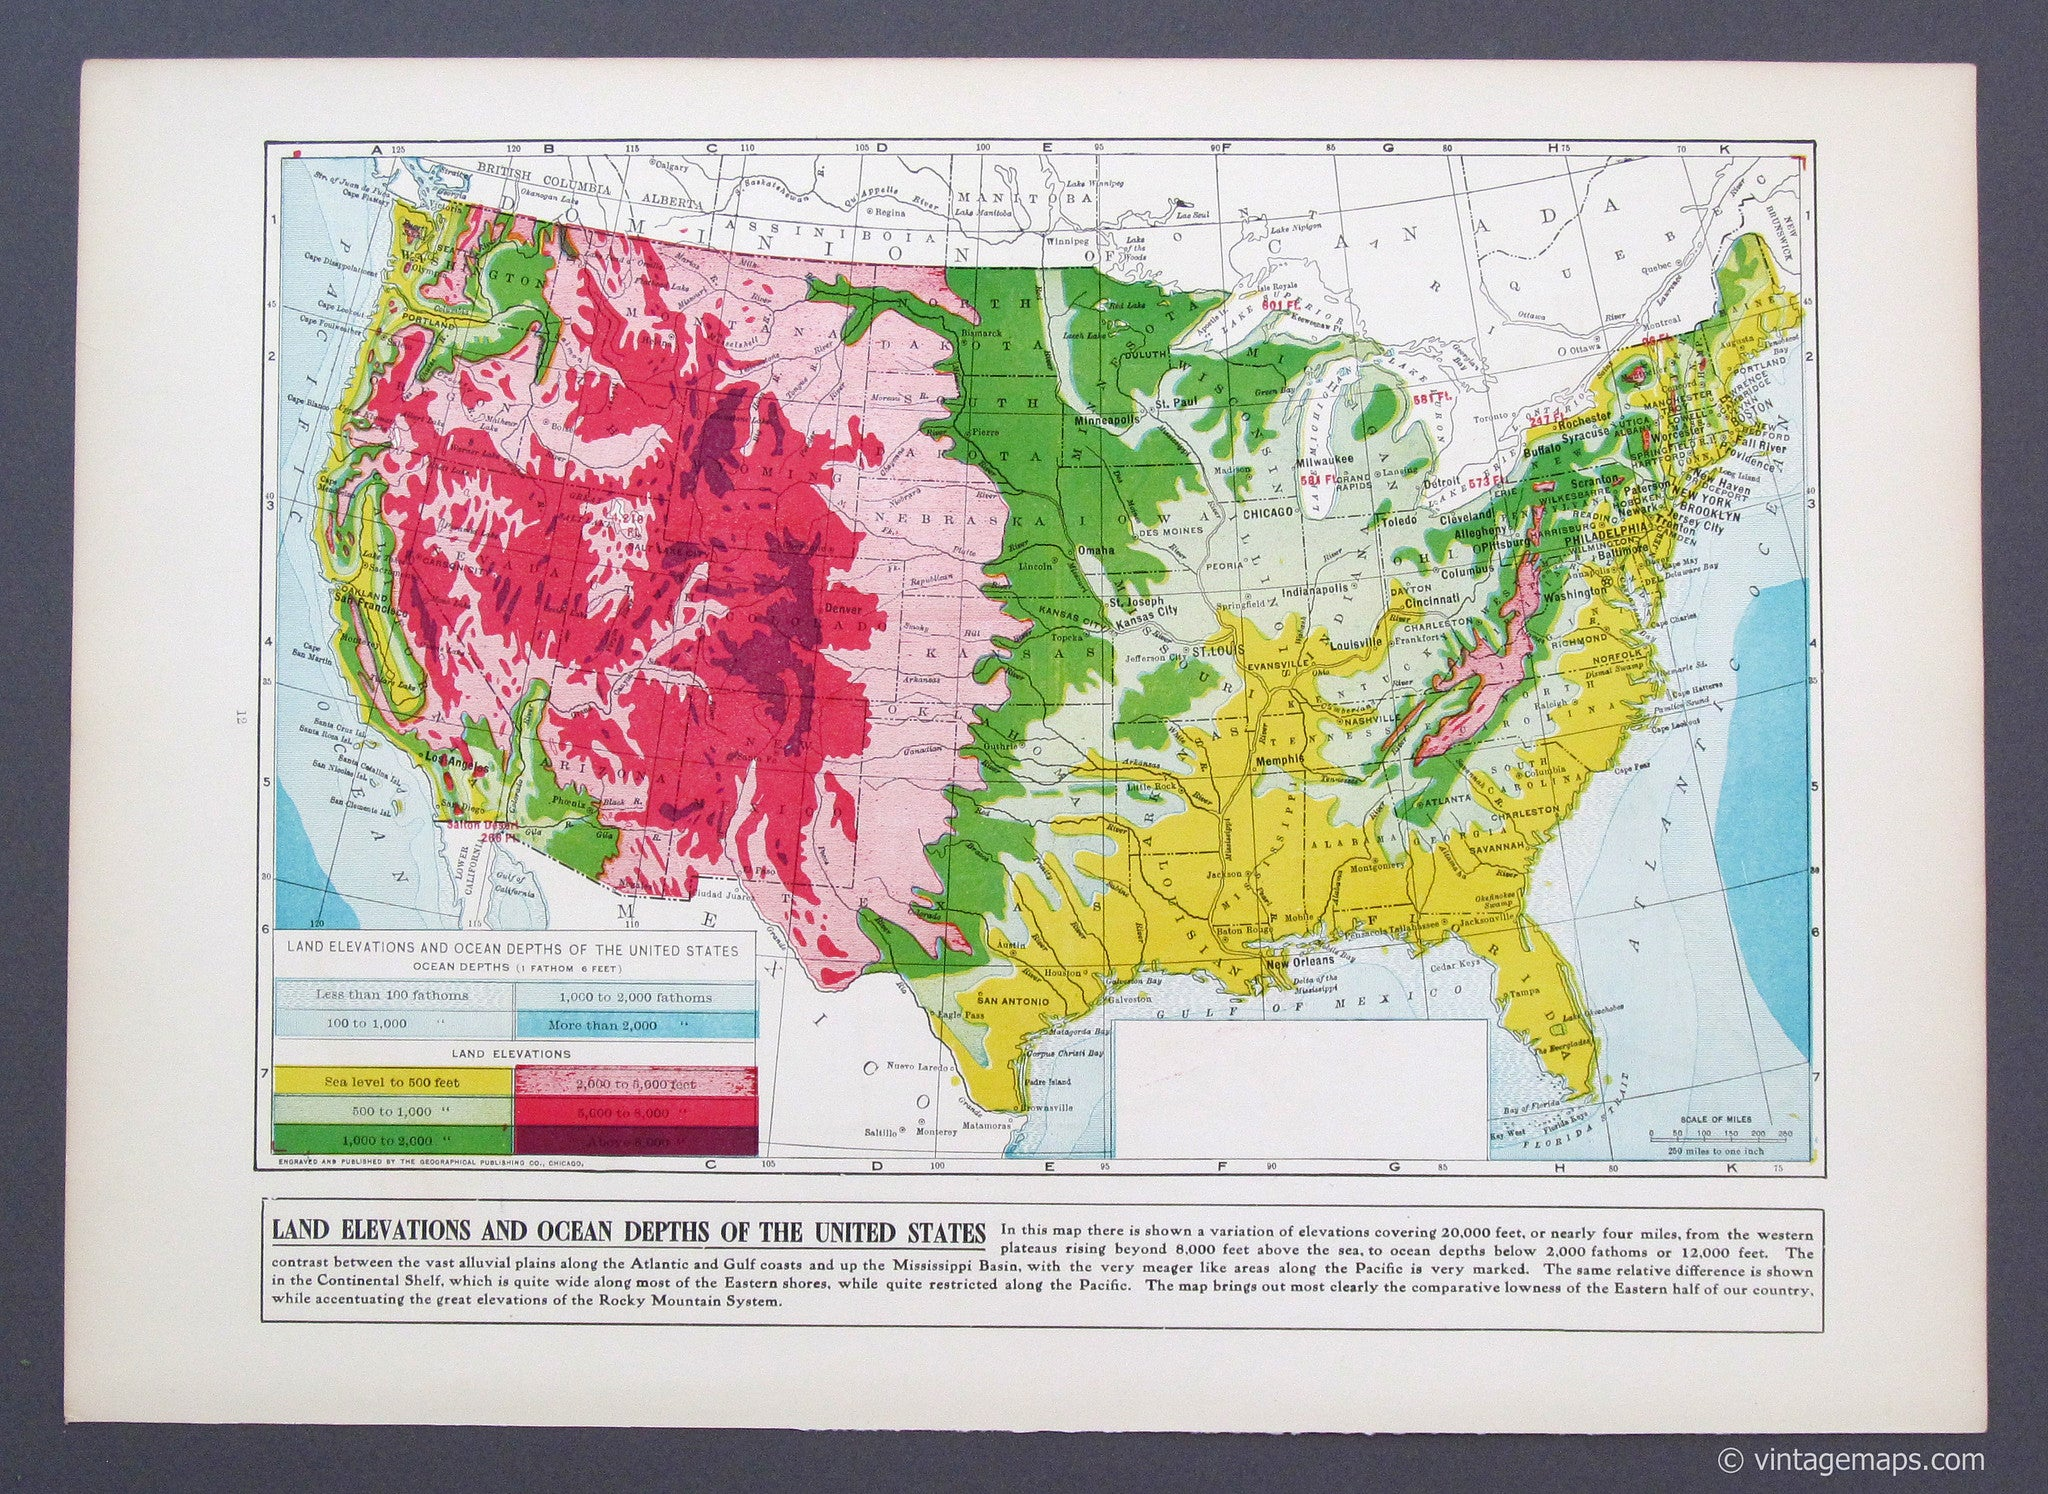 United States (U.S.) Elevations - Vintage Maps